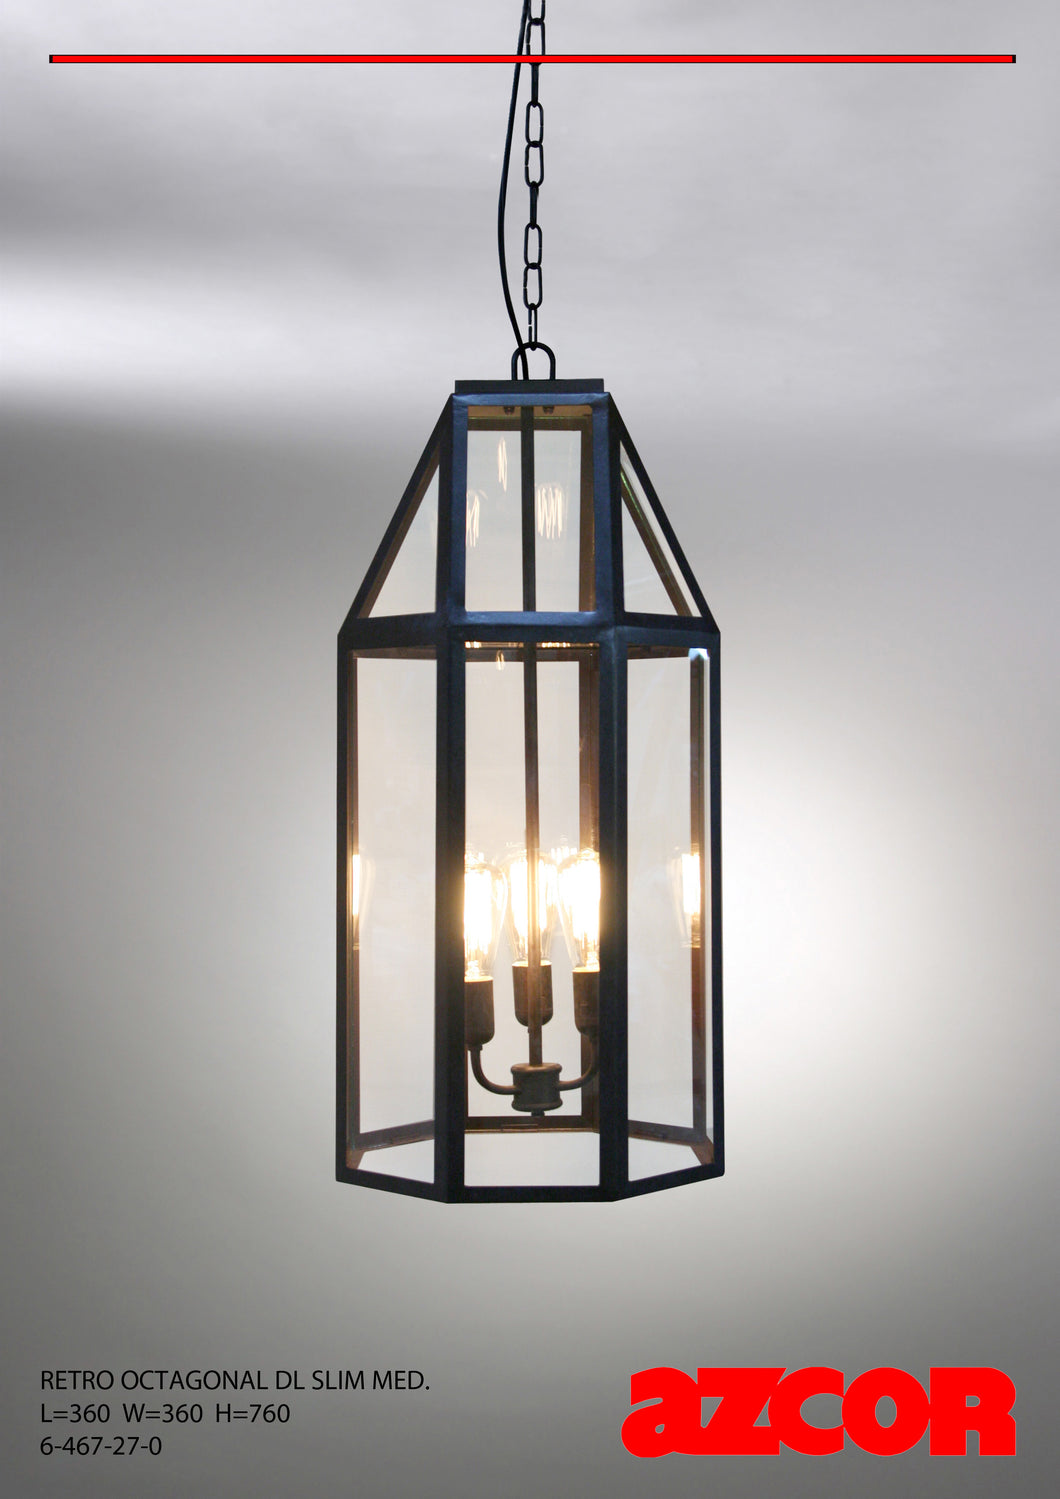 Retro Octagonal Slim Half Drop Light